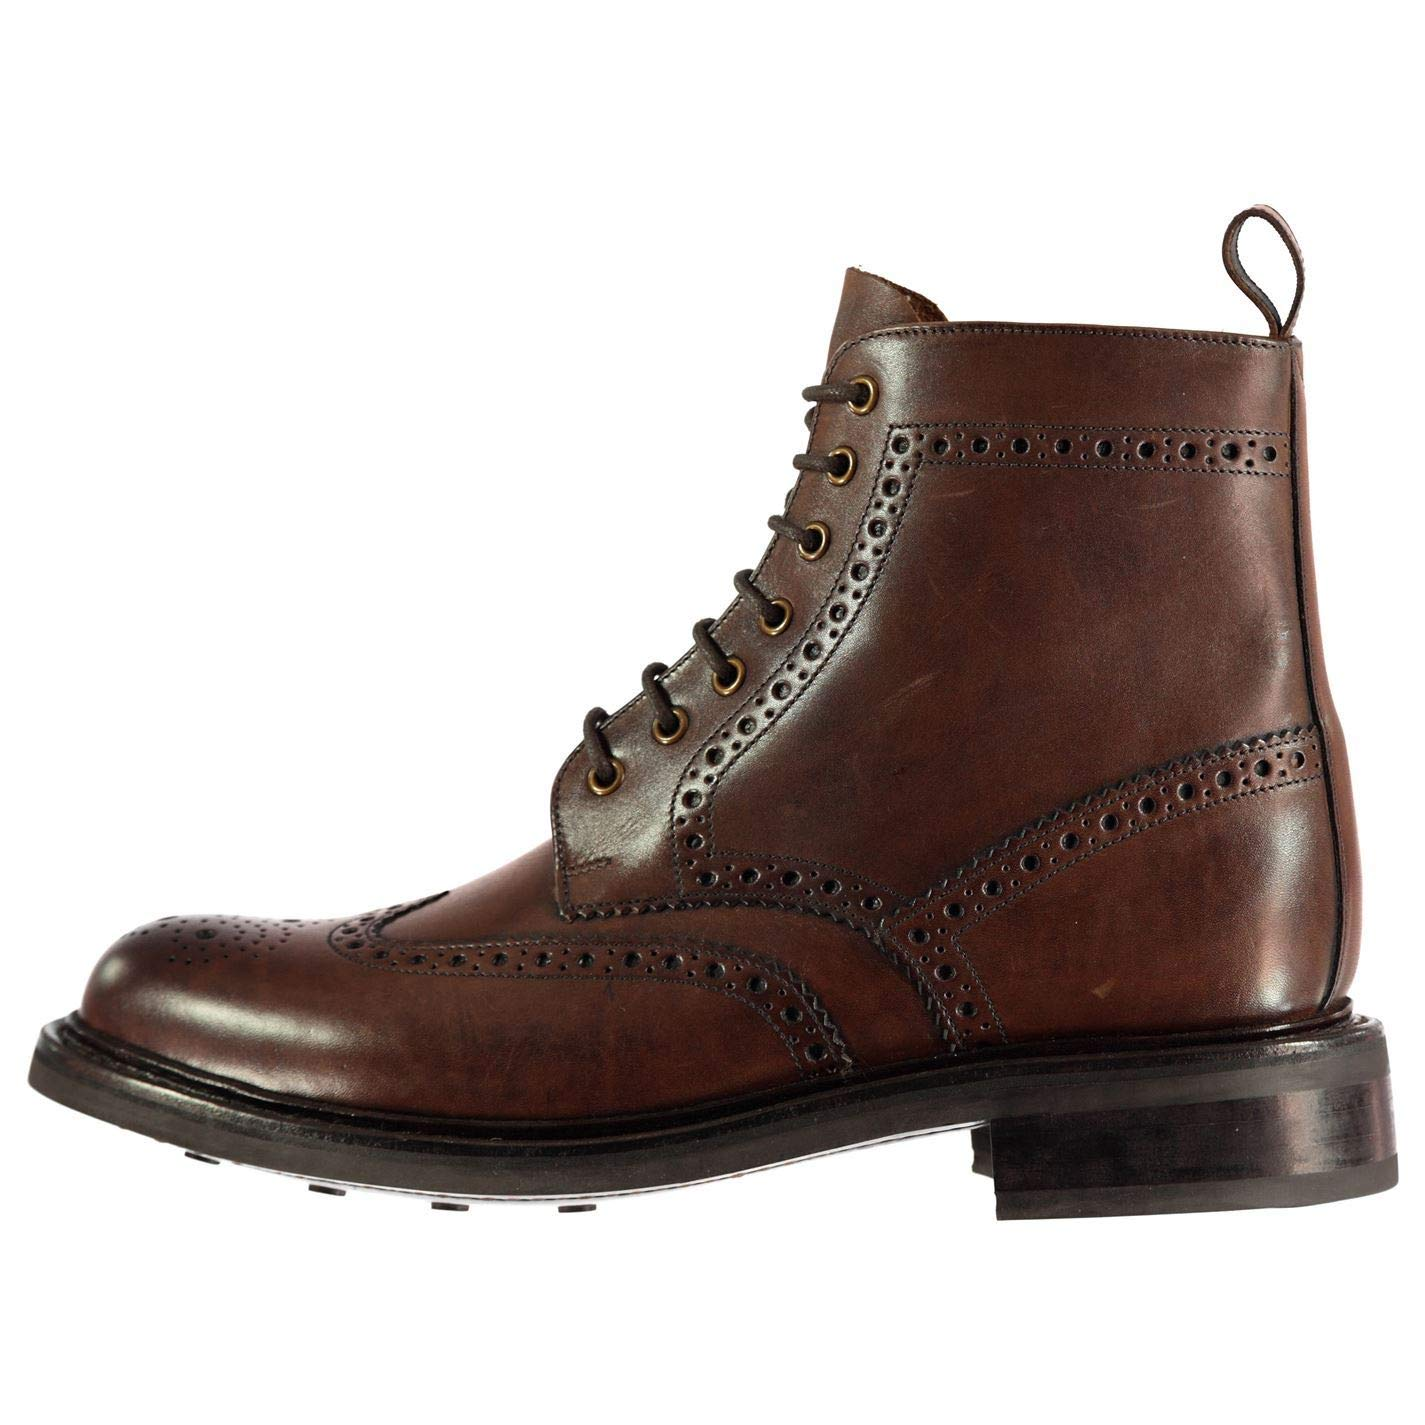 Brown Firetrap Blackseal Arnold Brougue Ankle Boots Mens Brown shoes Footwear